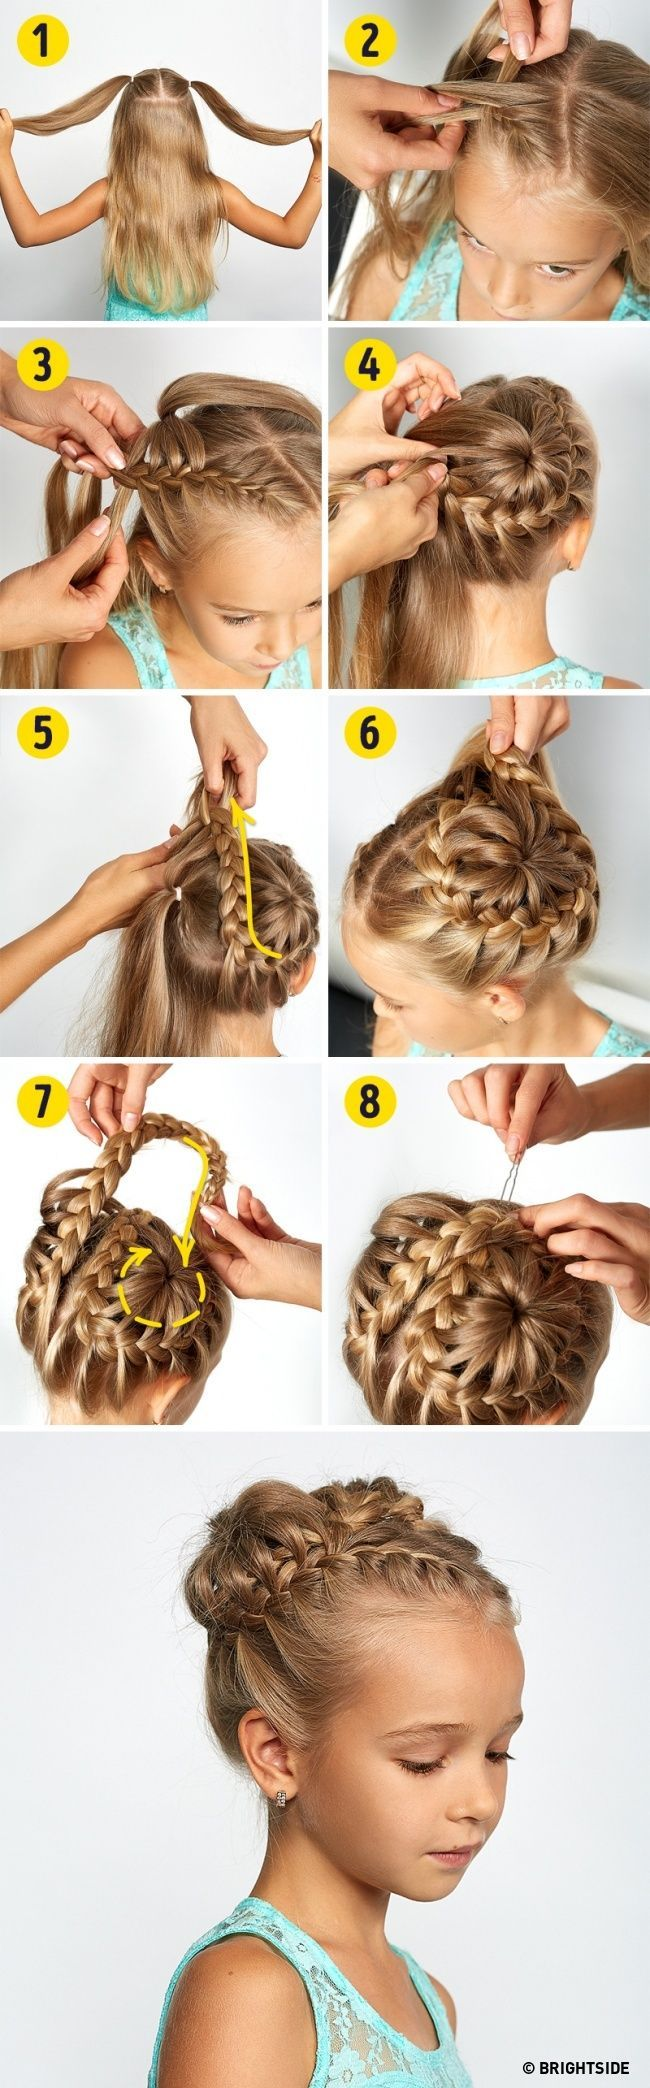 Four hairstyles to make your princess the most beautiful girl